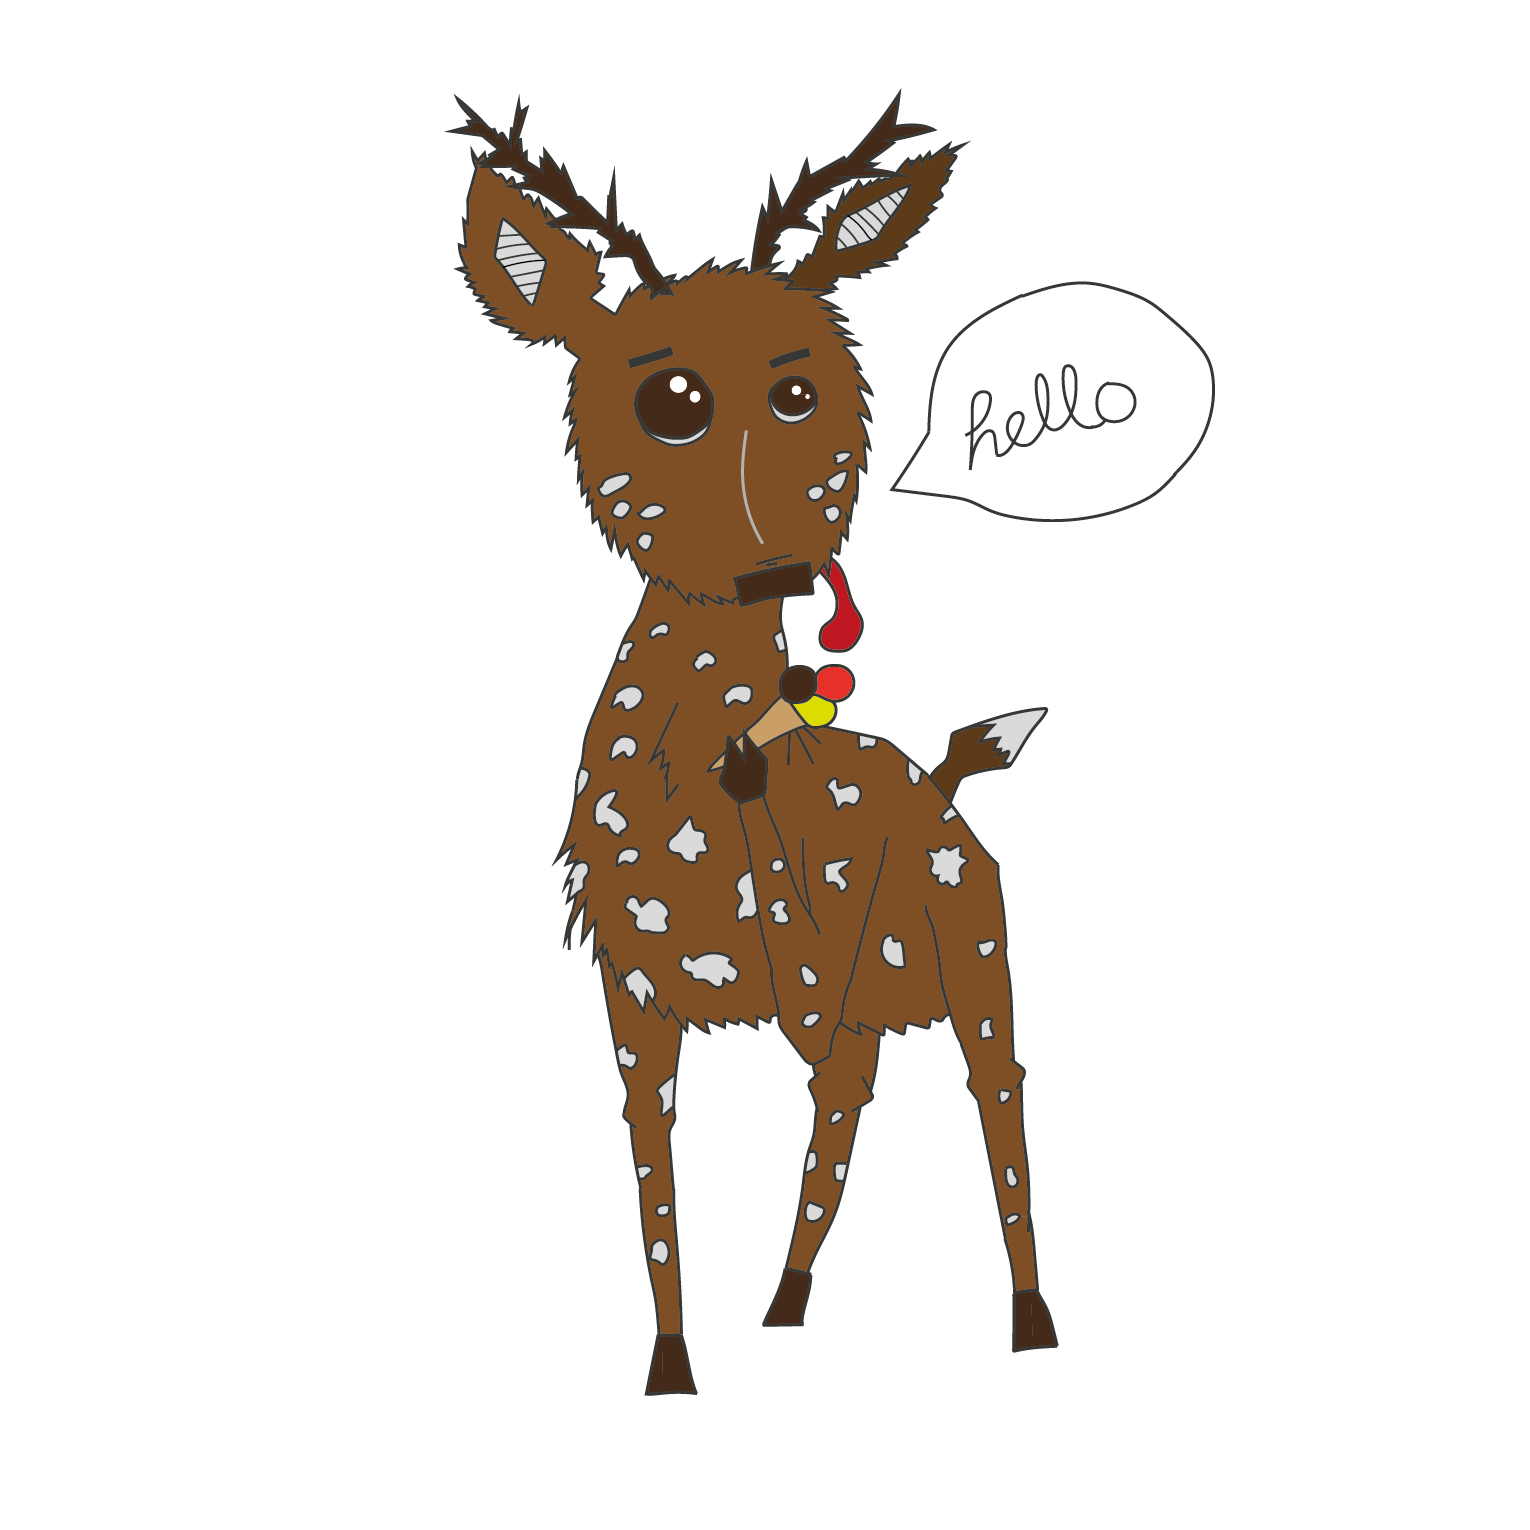 Diego the Deer eats ice-cream   2016 Digital illustration 15645 px x 11462 px  More information